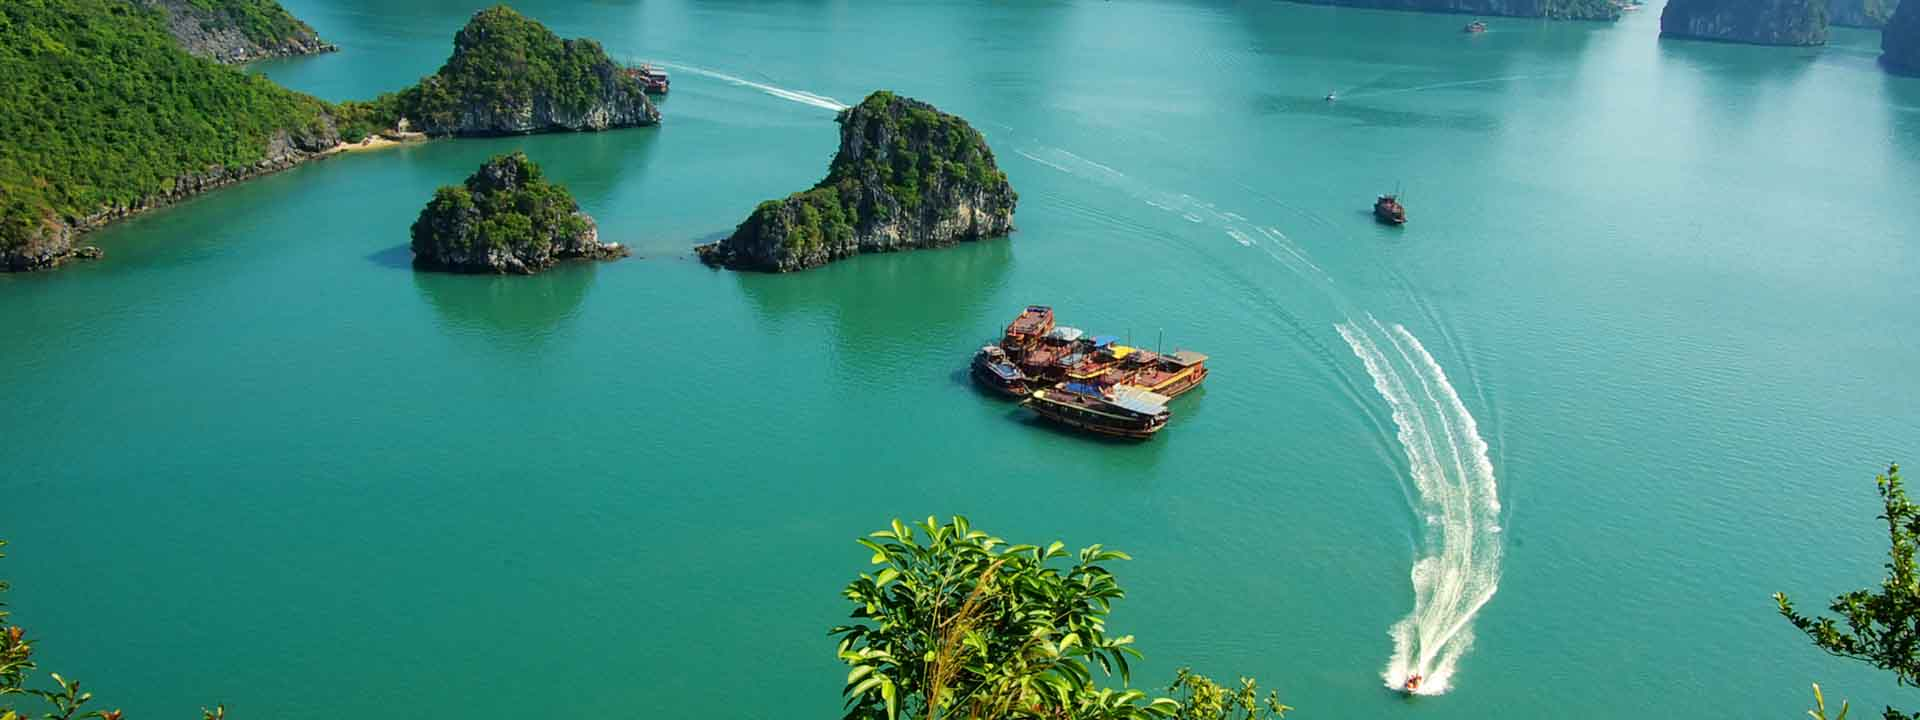 Hanoi & Halong Bay Luxury Escape 5 days